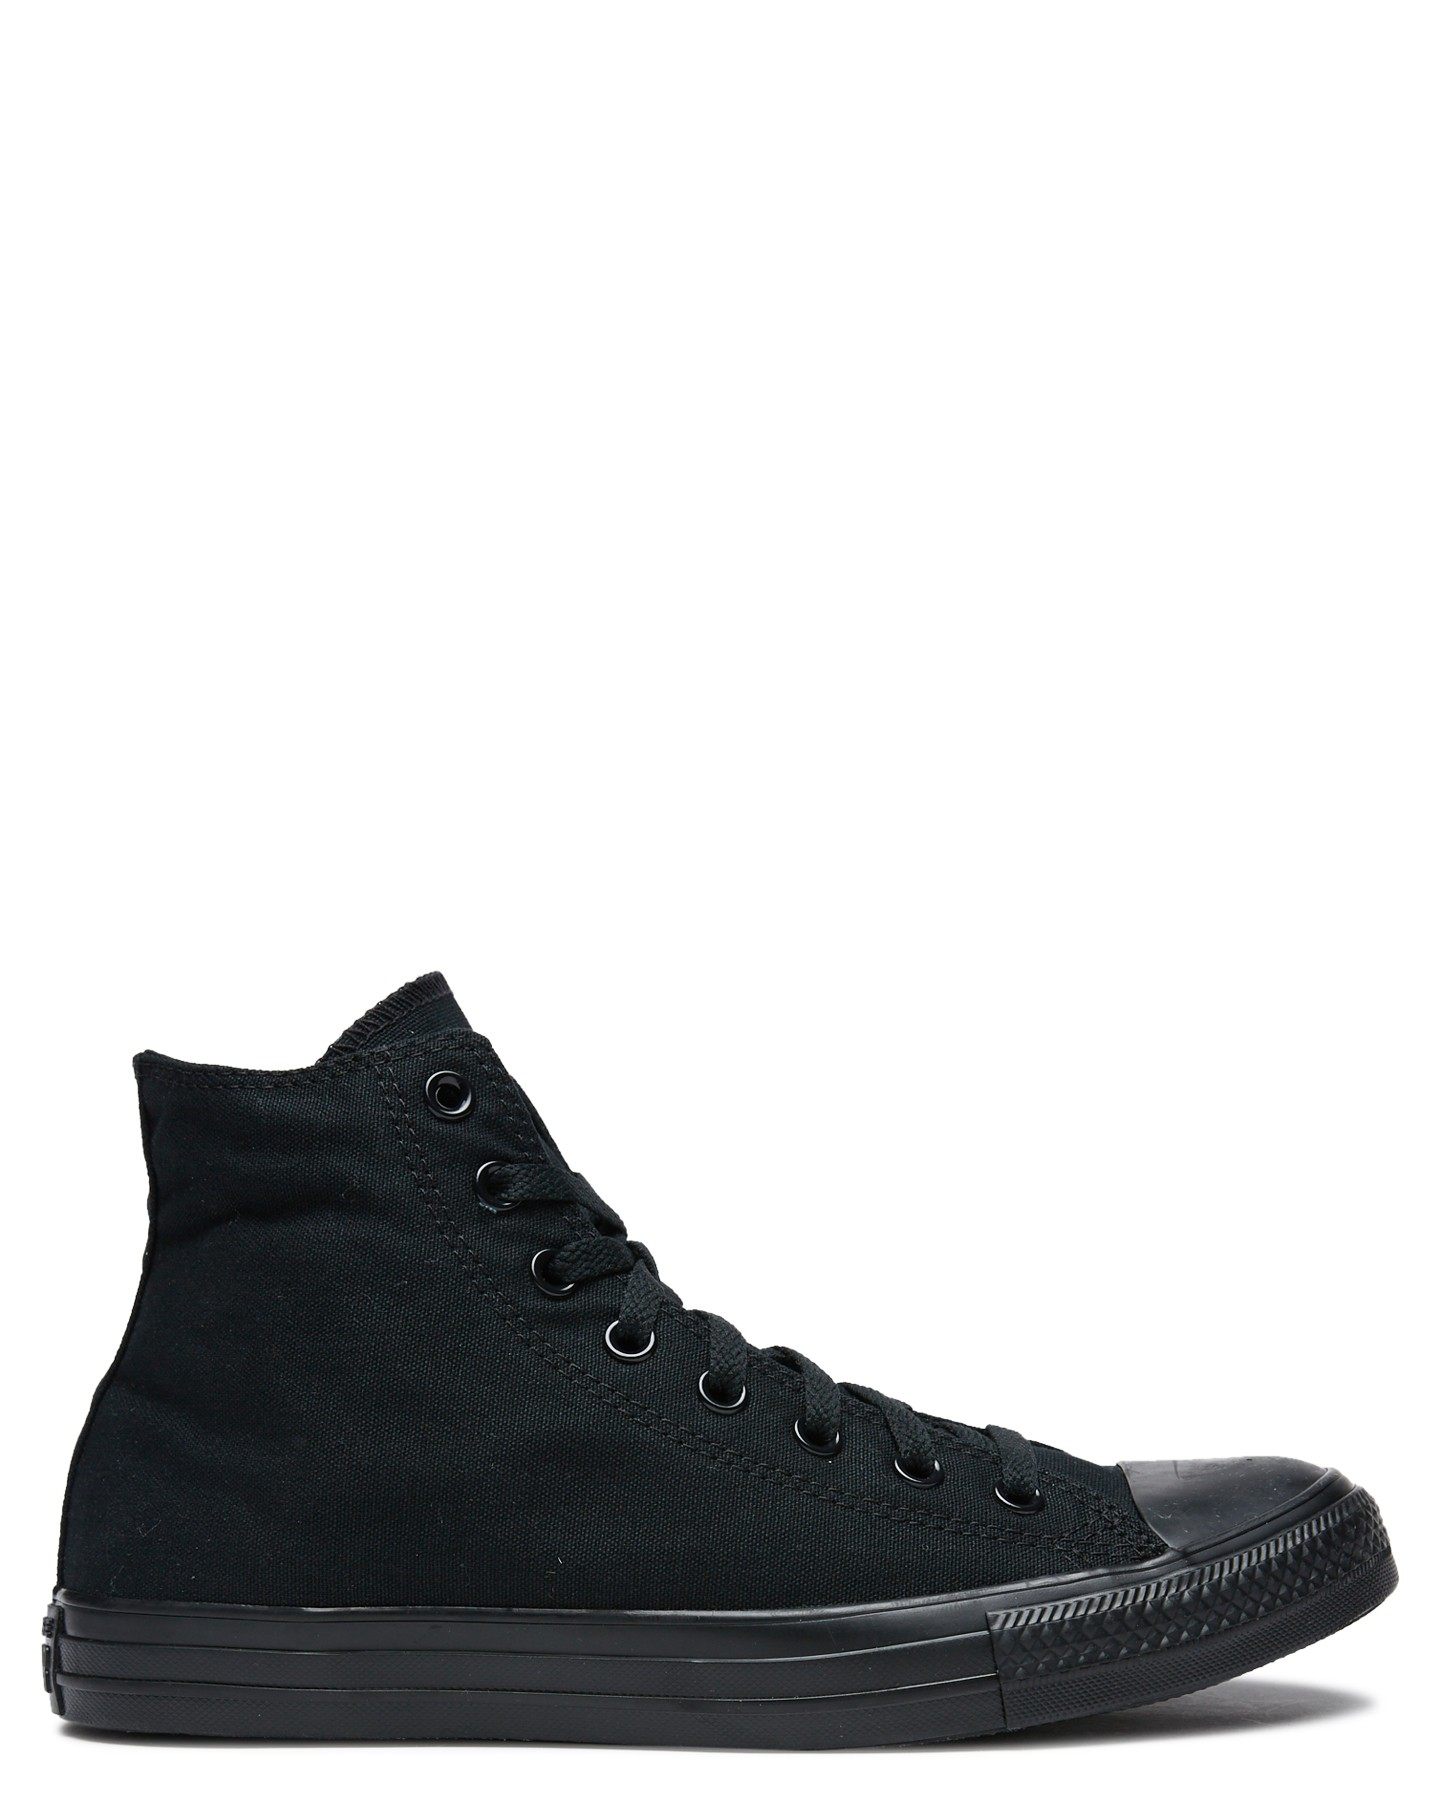 Converse Mens Chuck Taylor All Star Hi Top Shoe Black 022859063821